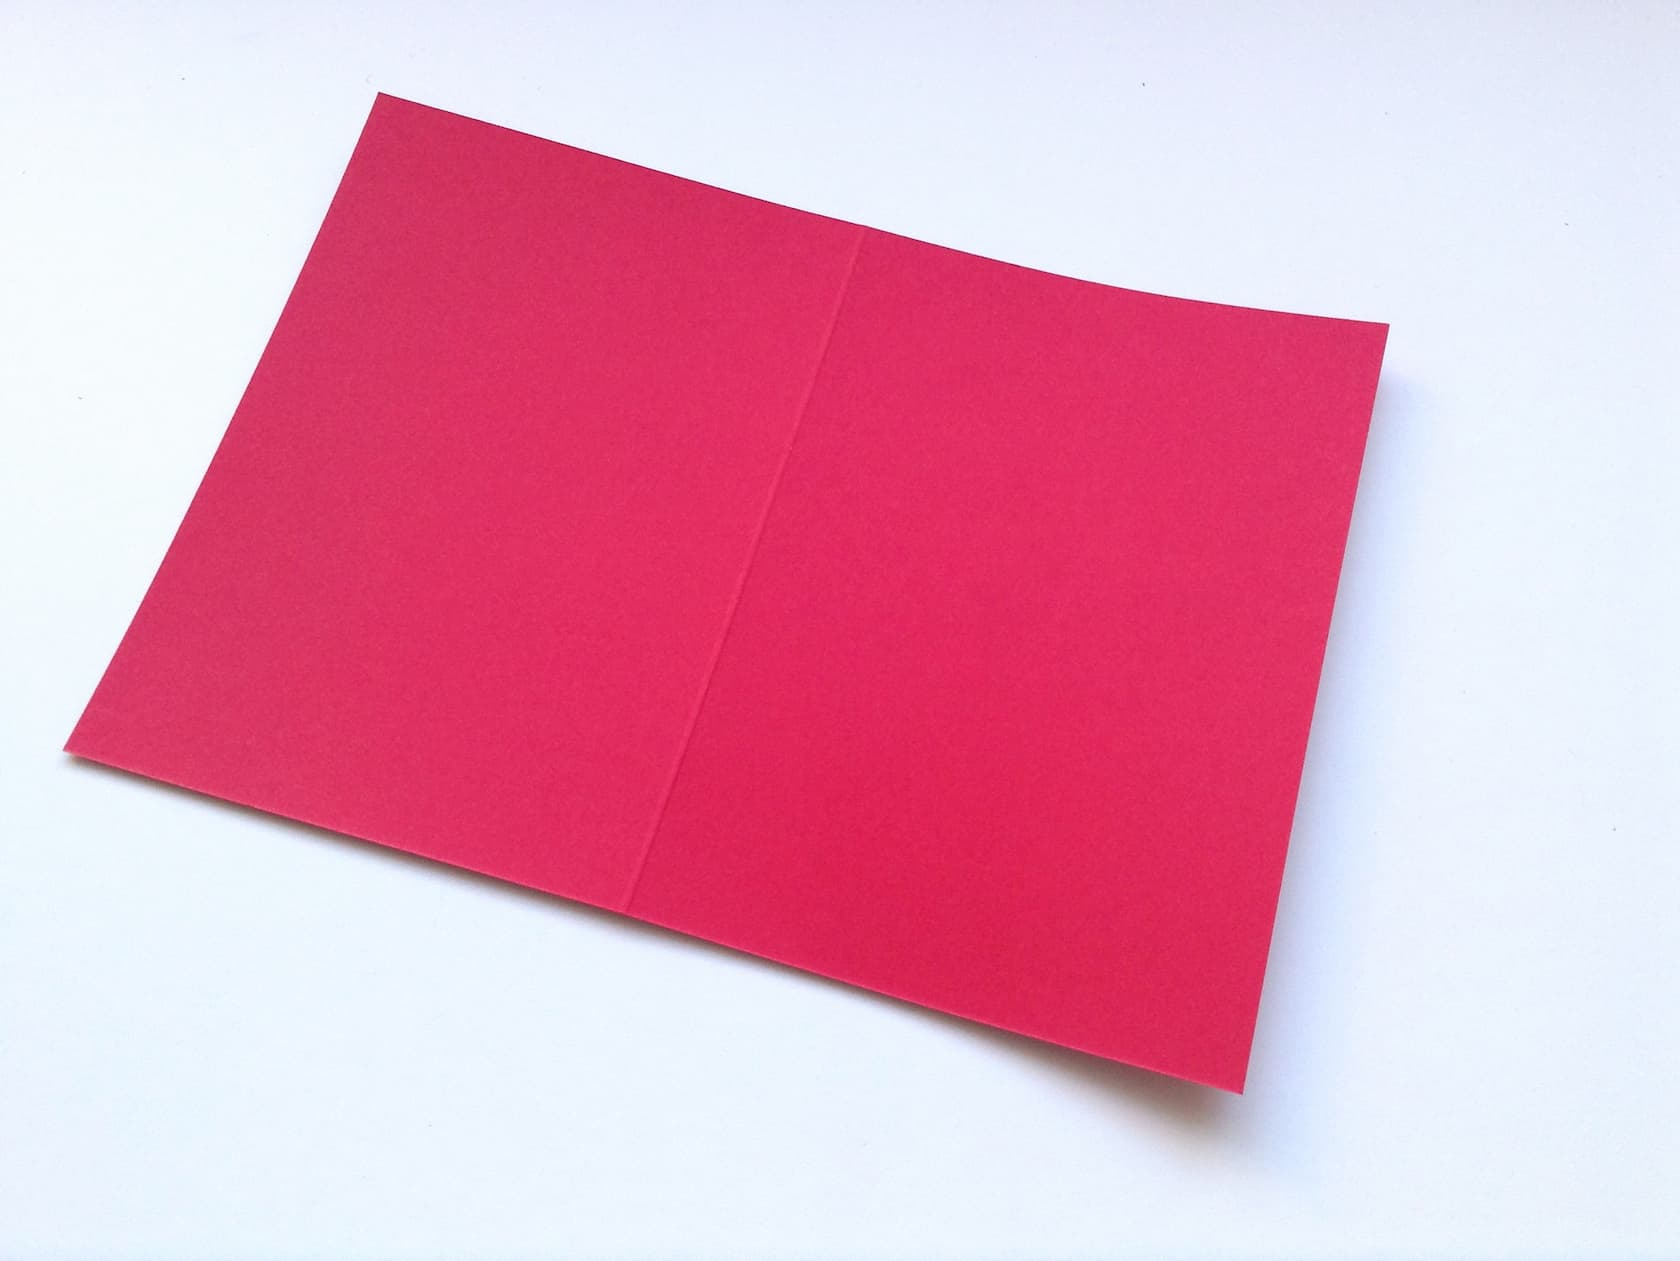 Take your red Valentine's card